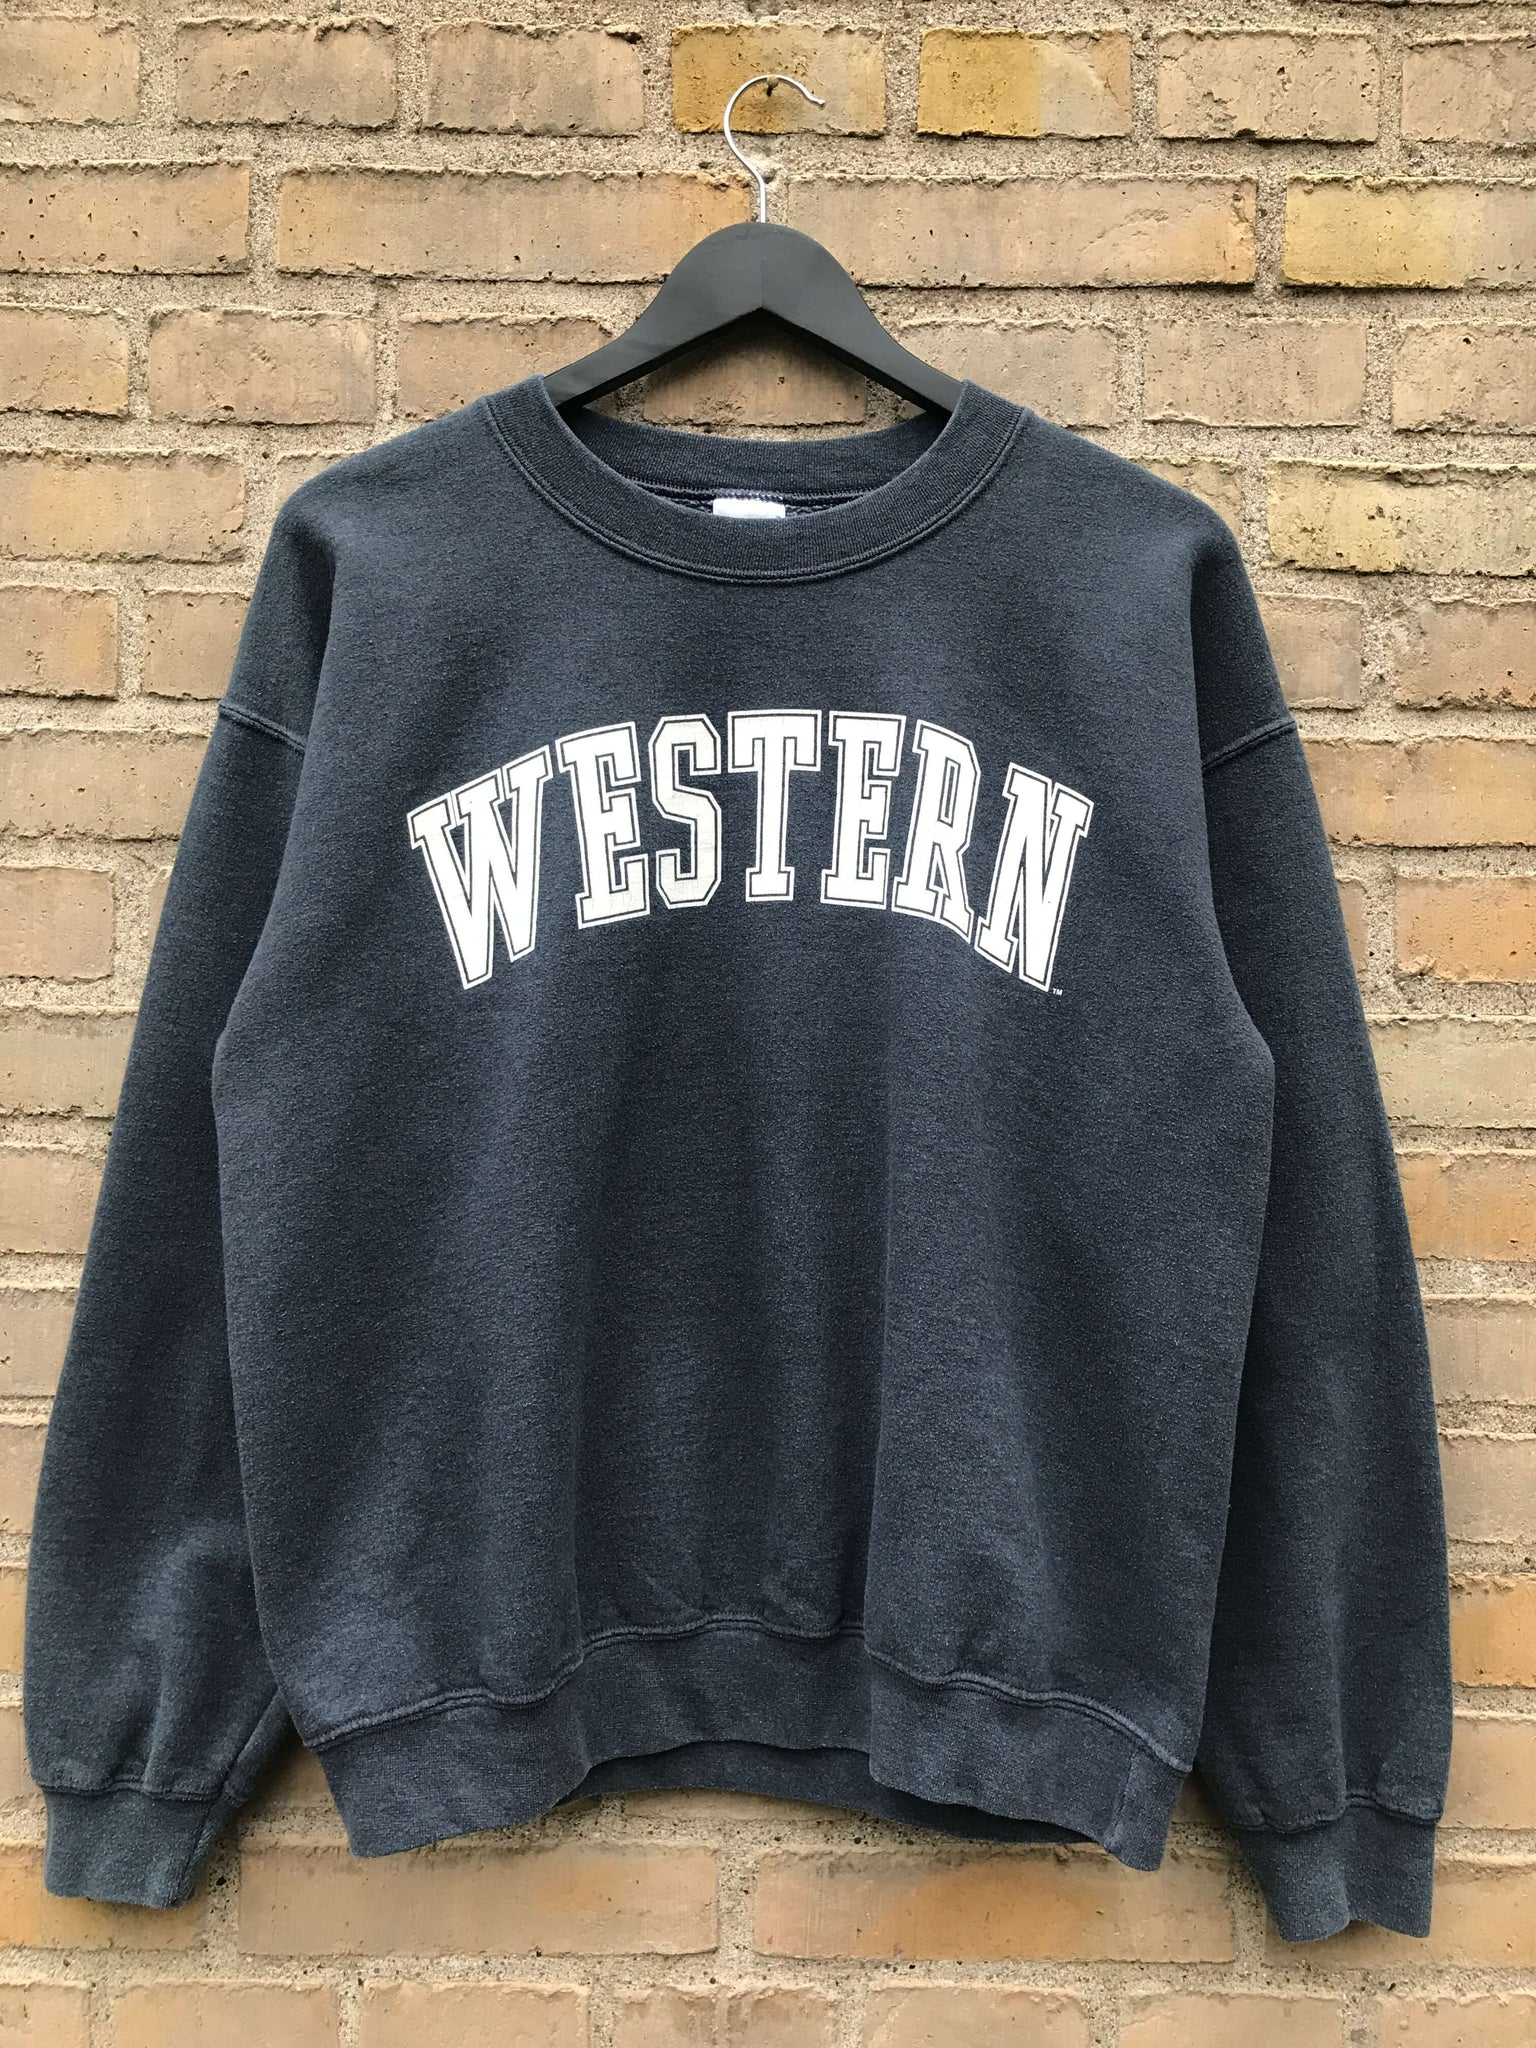 Vintage Western Sweatshirt - Medium